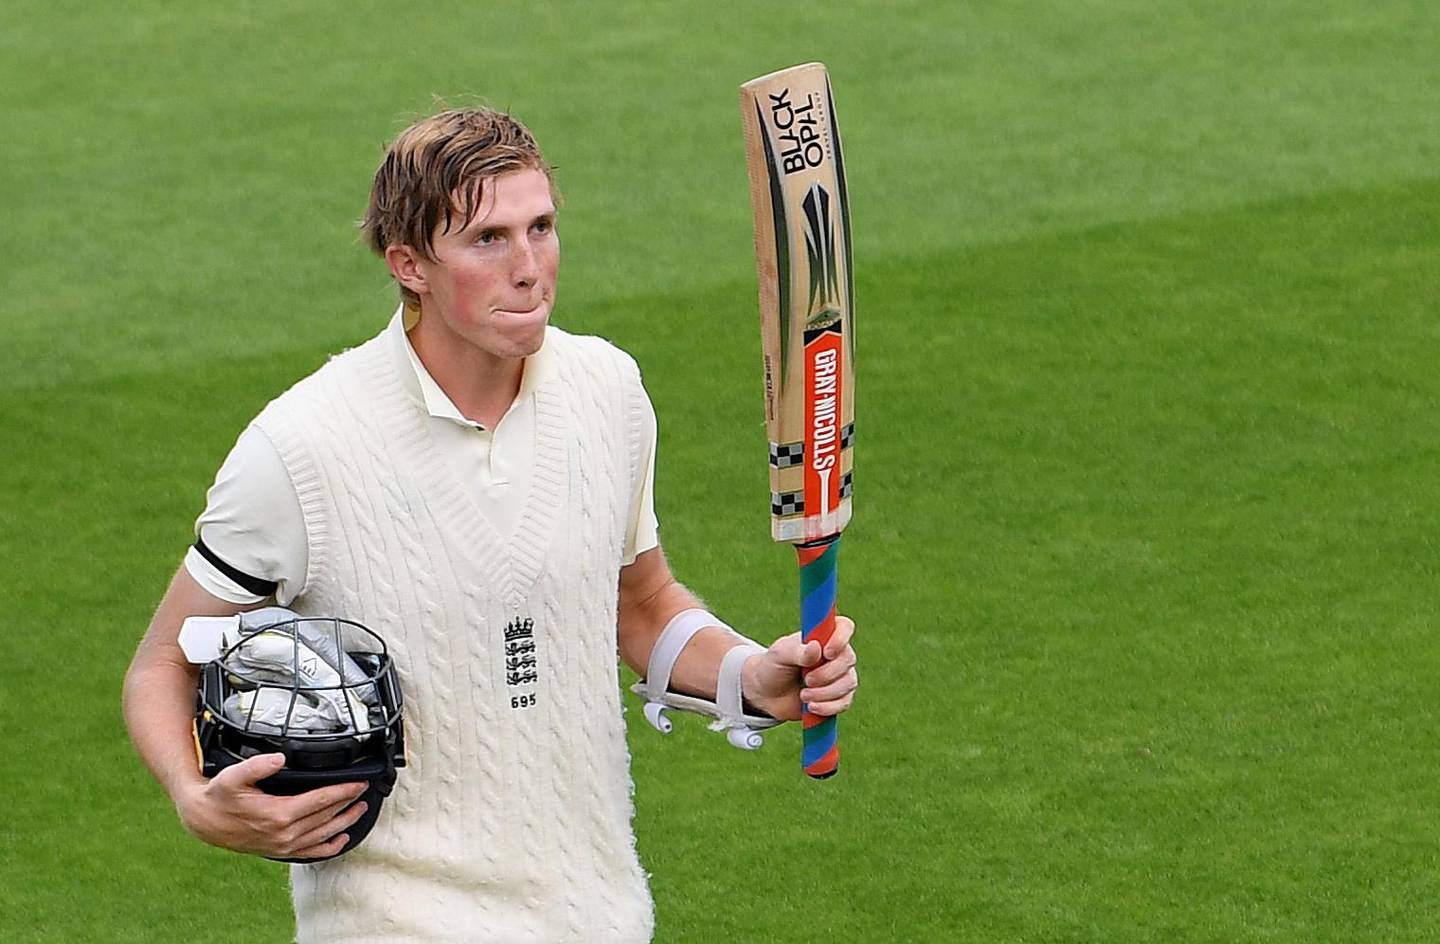 Cricket - Third Test - England v Pakistan - Ageas Bowl, Southampton, Britain - August 21, 2020   England's Zak Crawley reacts as he walks off at the end of play, as play resumes behind closed doors following the outbreak of the coronavirus disease (COVID-19)   Mike Hewitt/Pool via REUTERS